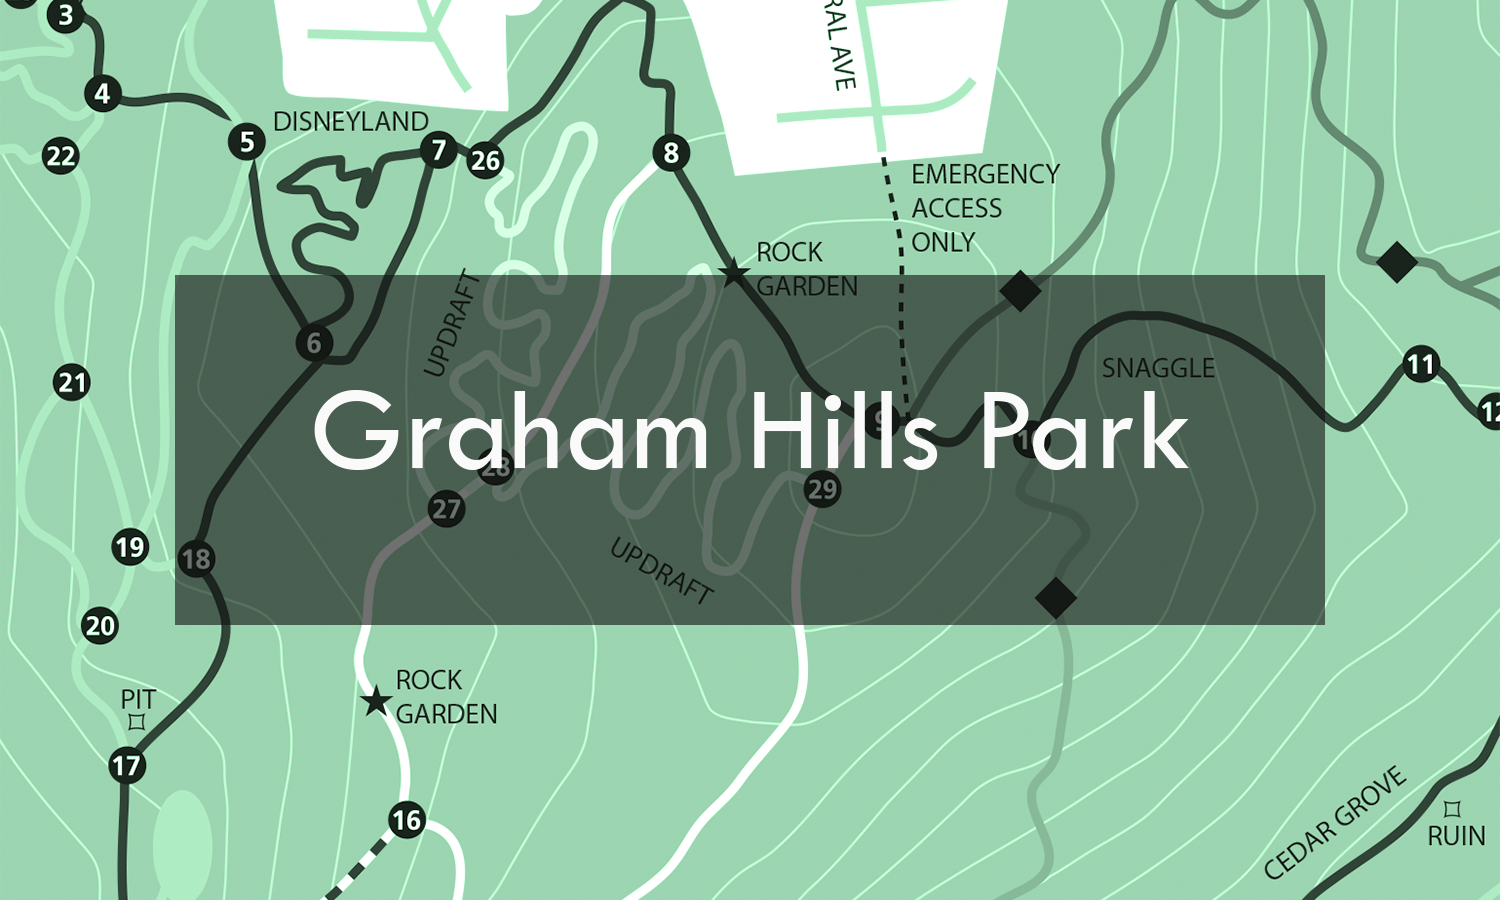 Graham is a great place to ride if you want to get in a fun one with limited time. With some technical options, this park lends itself to the intermediate rider.